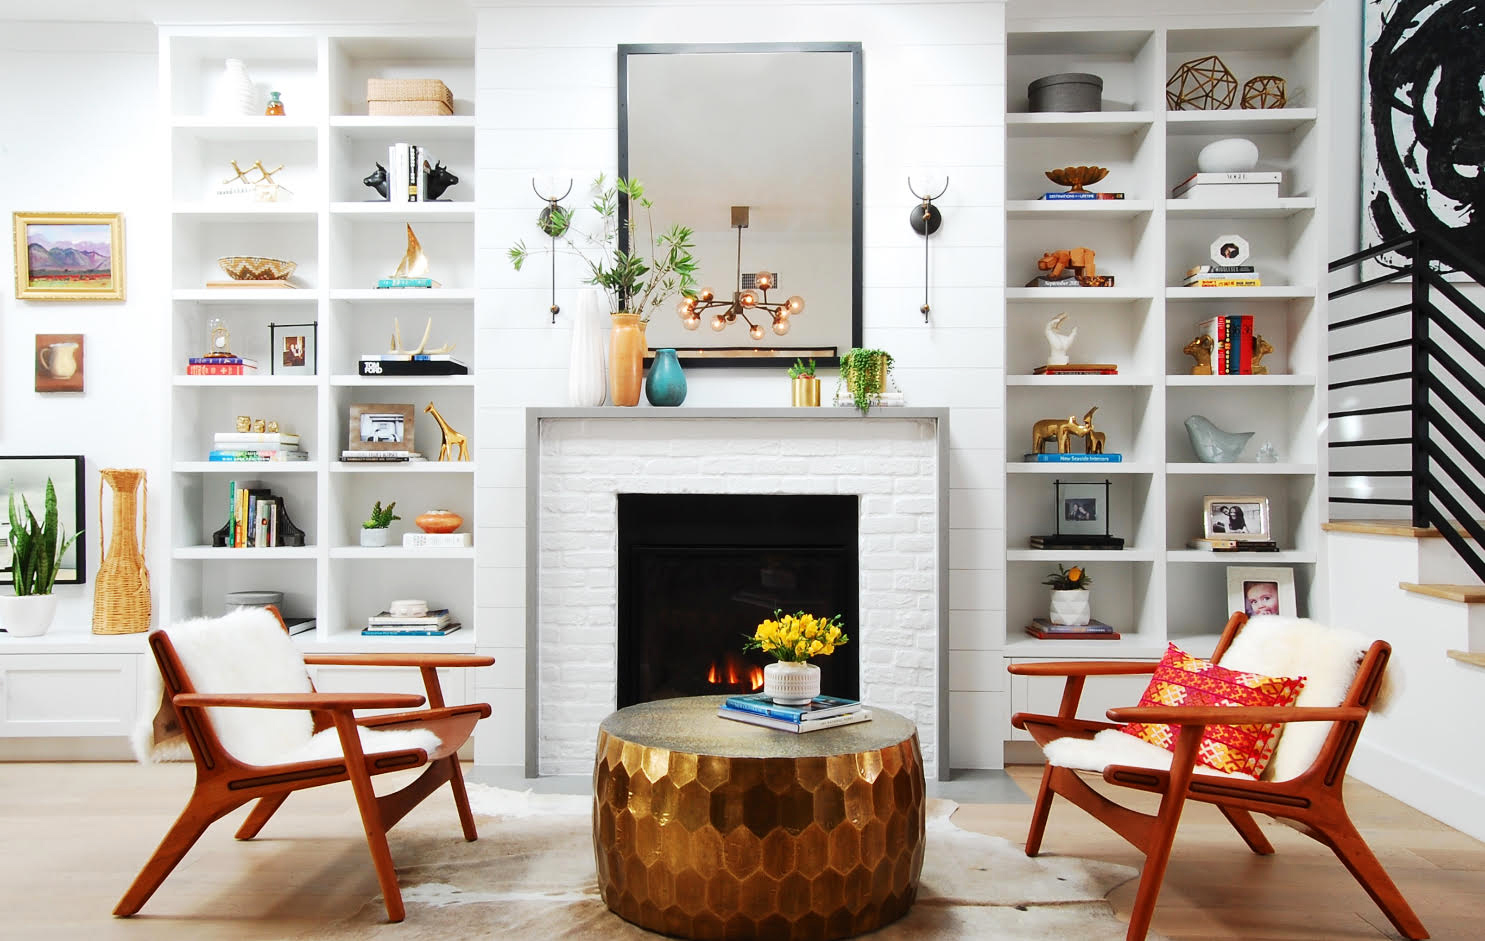 fireplace surround in white with colorful accessories